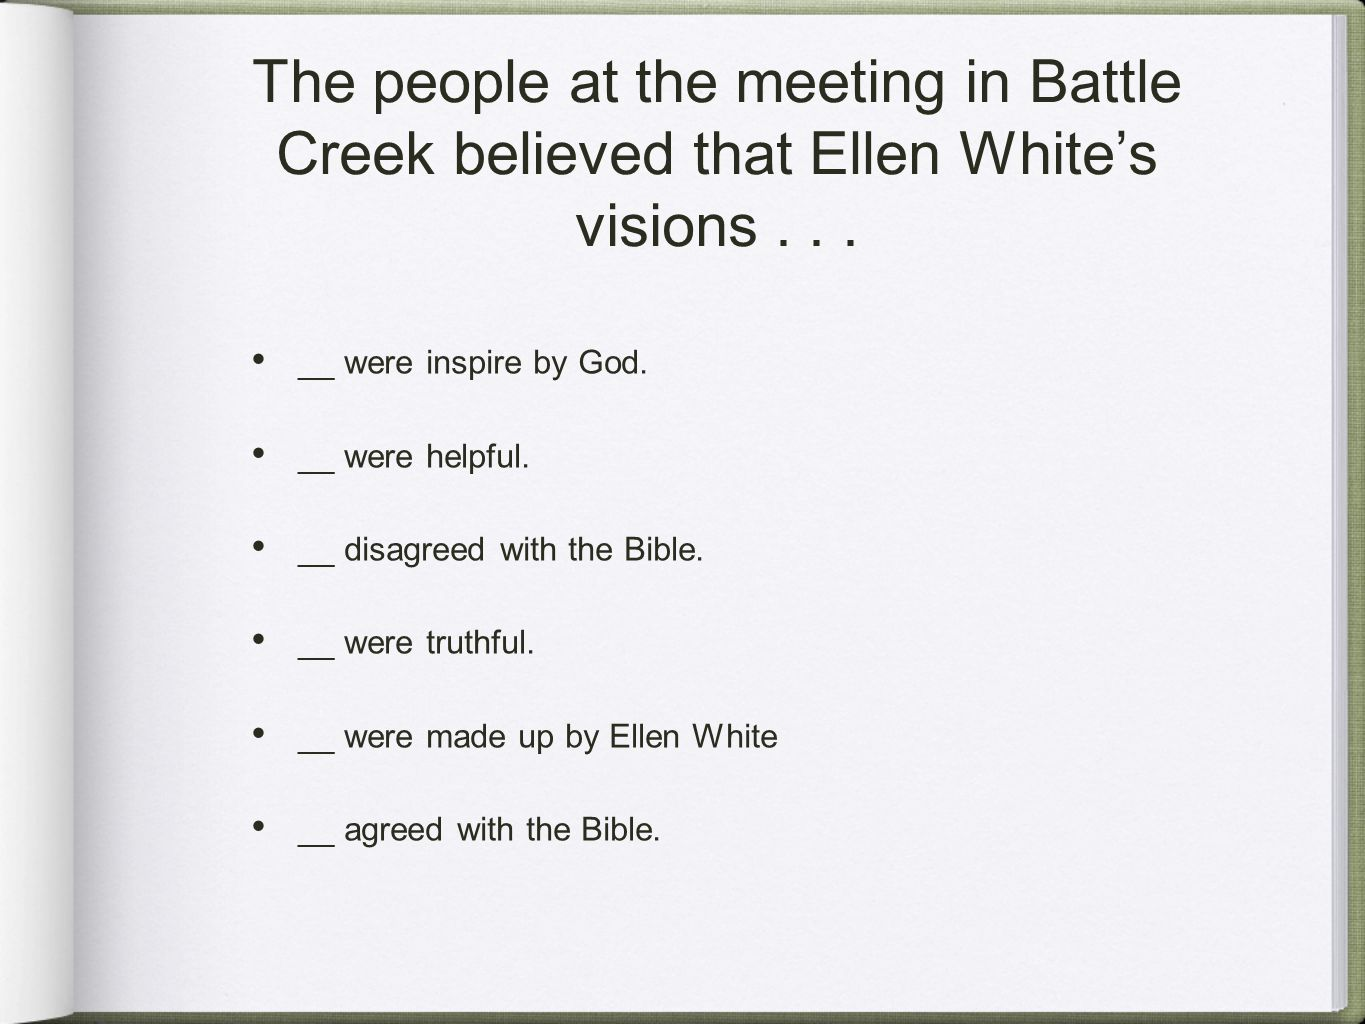 The people at the meeting in Battle Creek believed that Ellen White's visions...